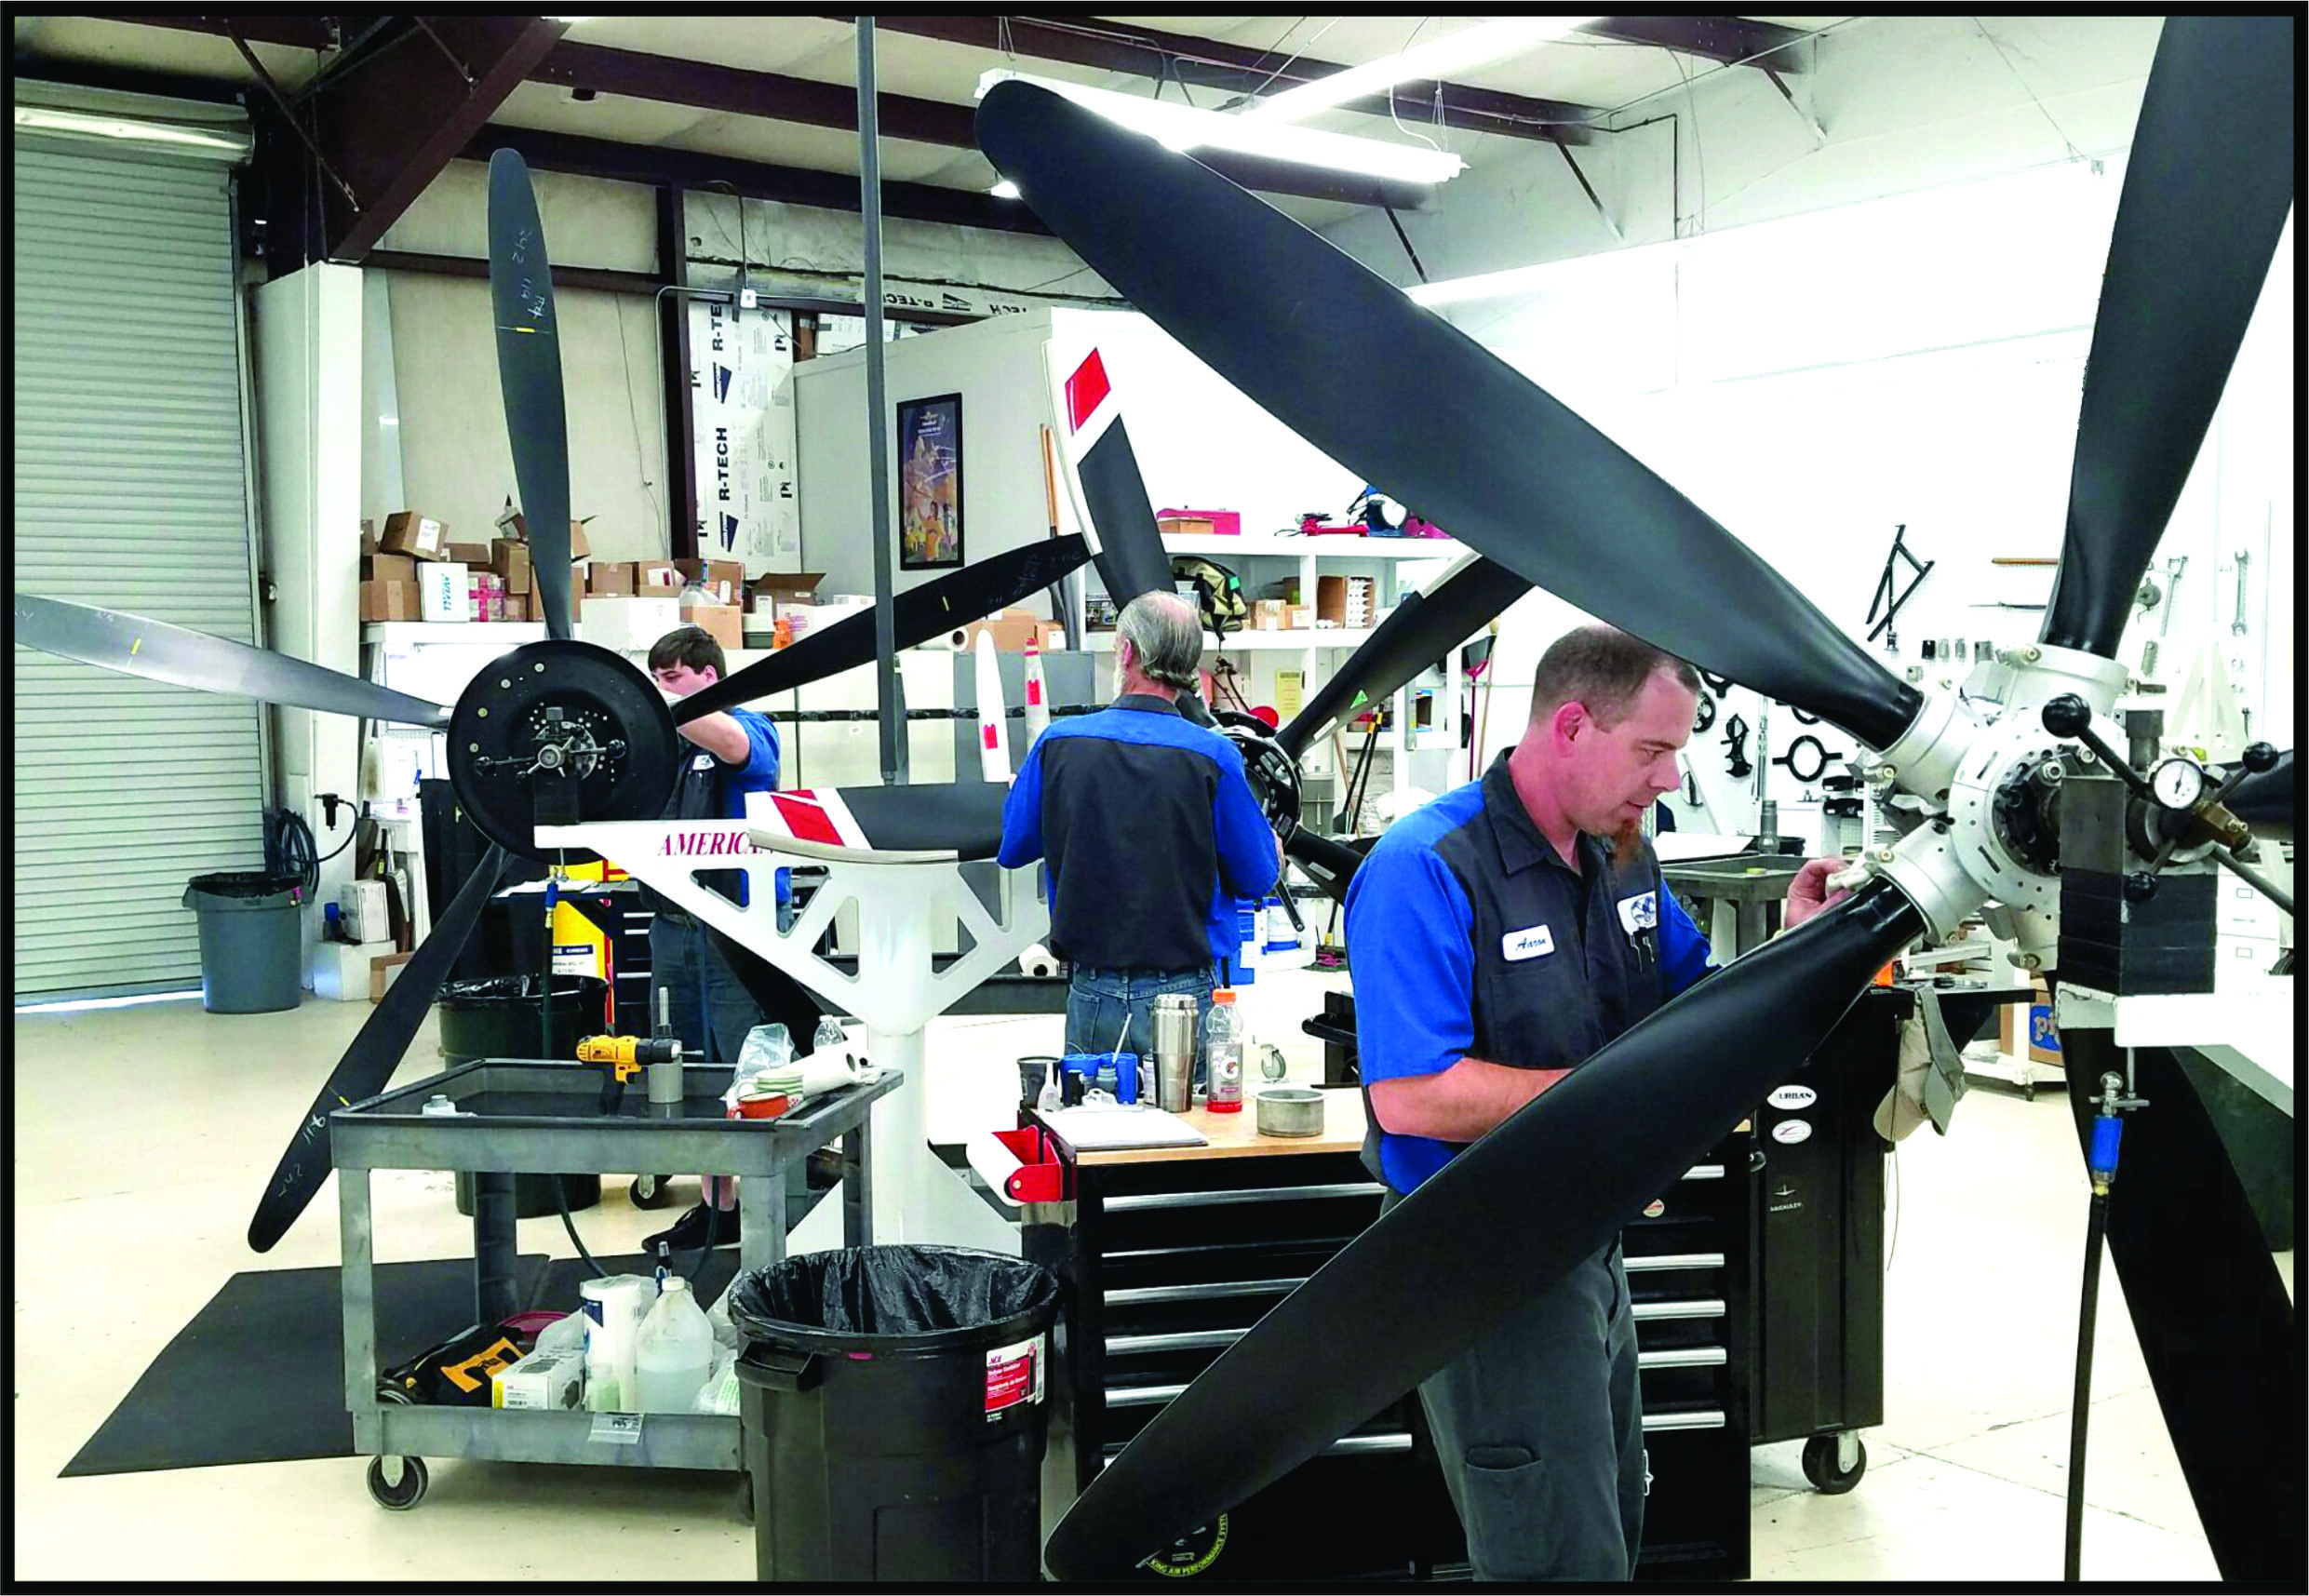 Propeller Service, Repair, Reseals, Prop Strike Repair, Custom Propellers, Metal Alloy, Composite Propellers